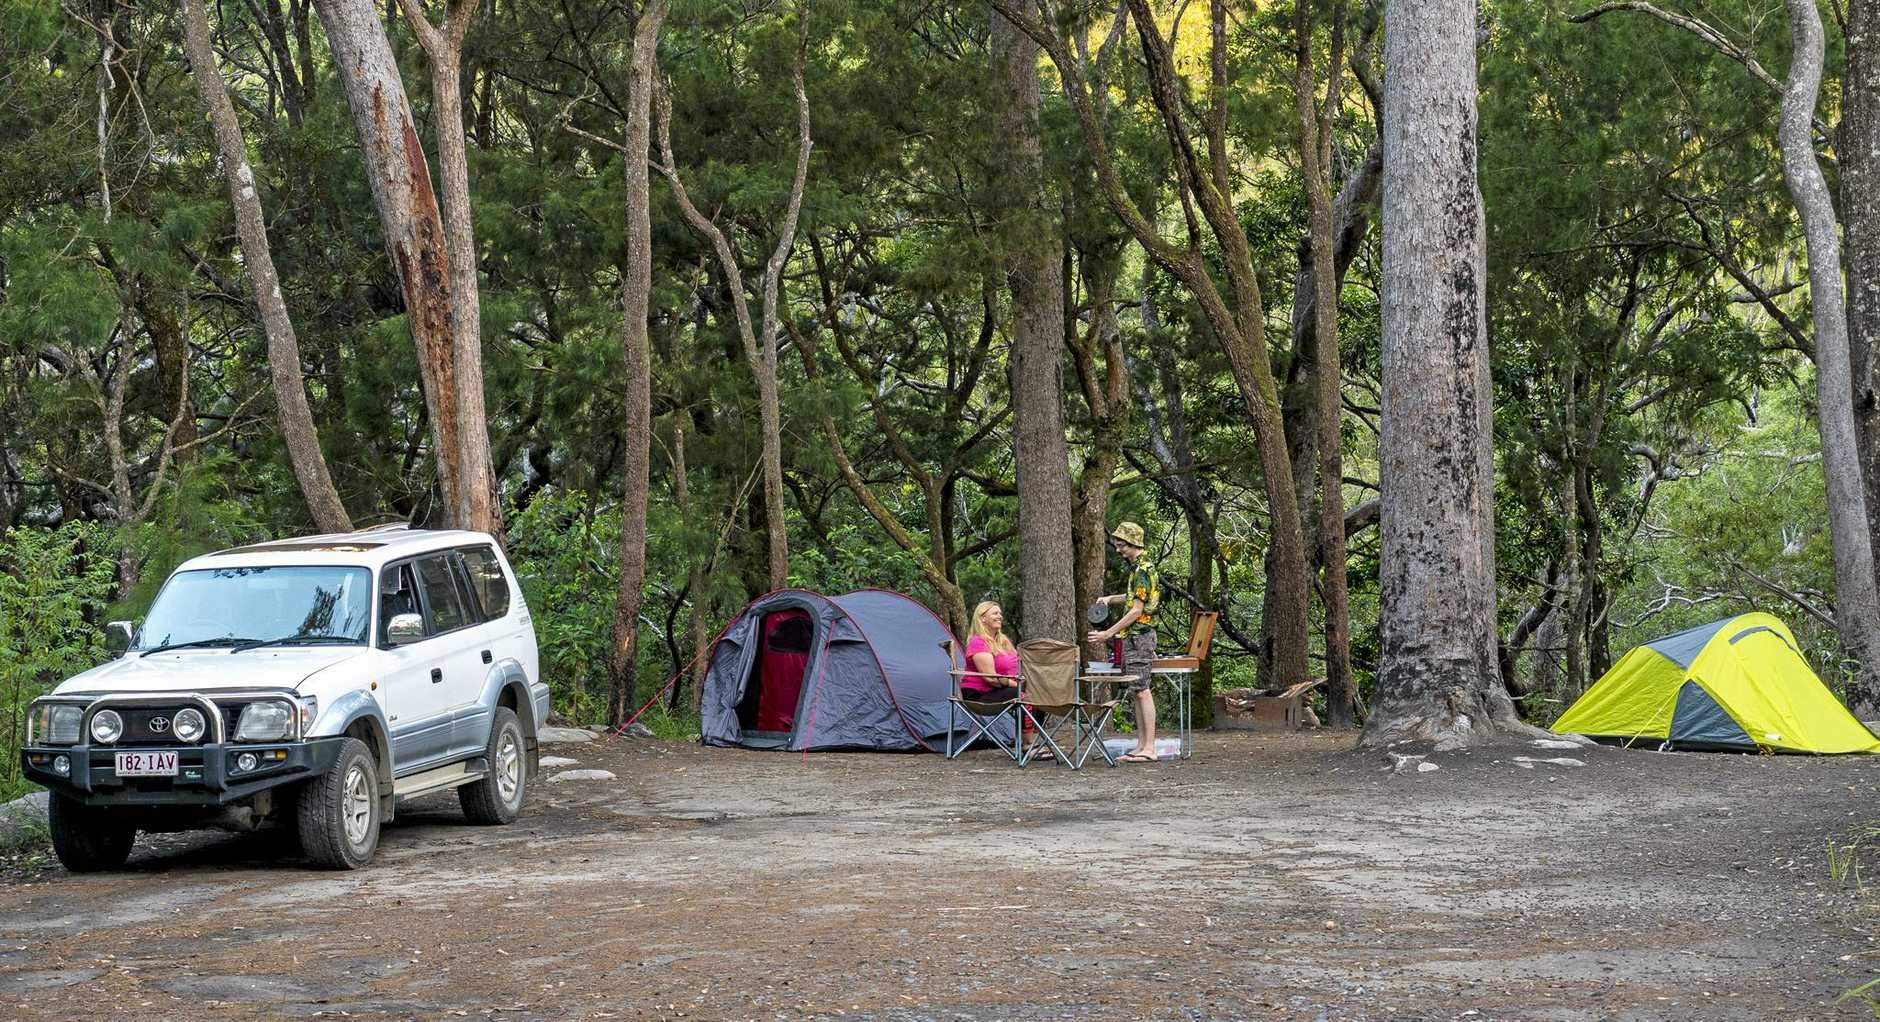 Upper Davies Creek camping area at Dinden National Park